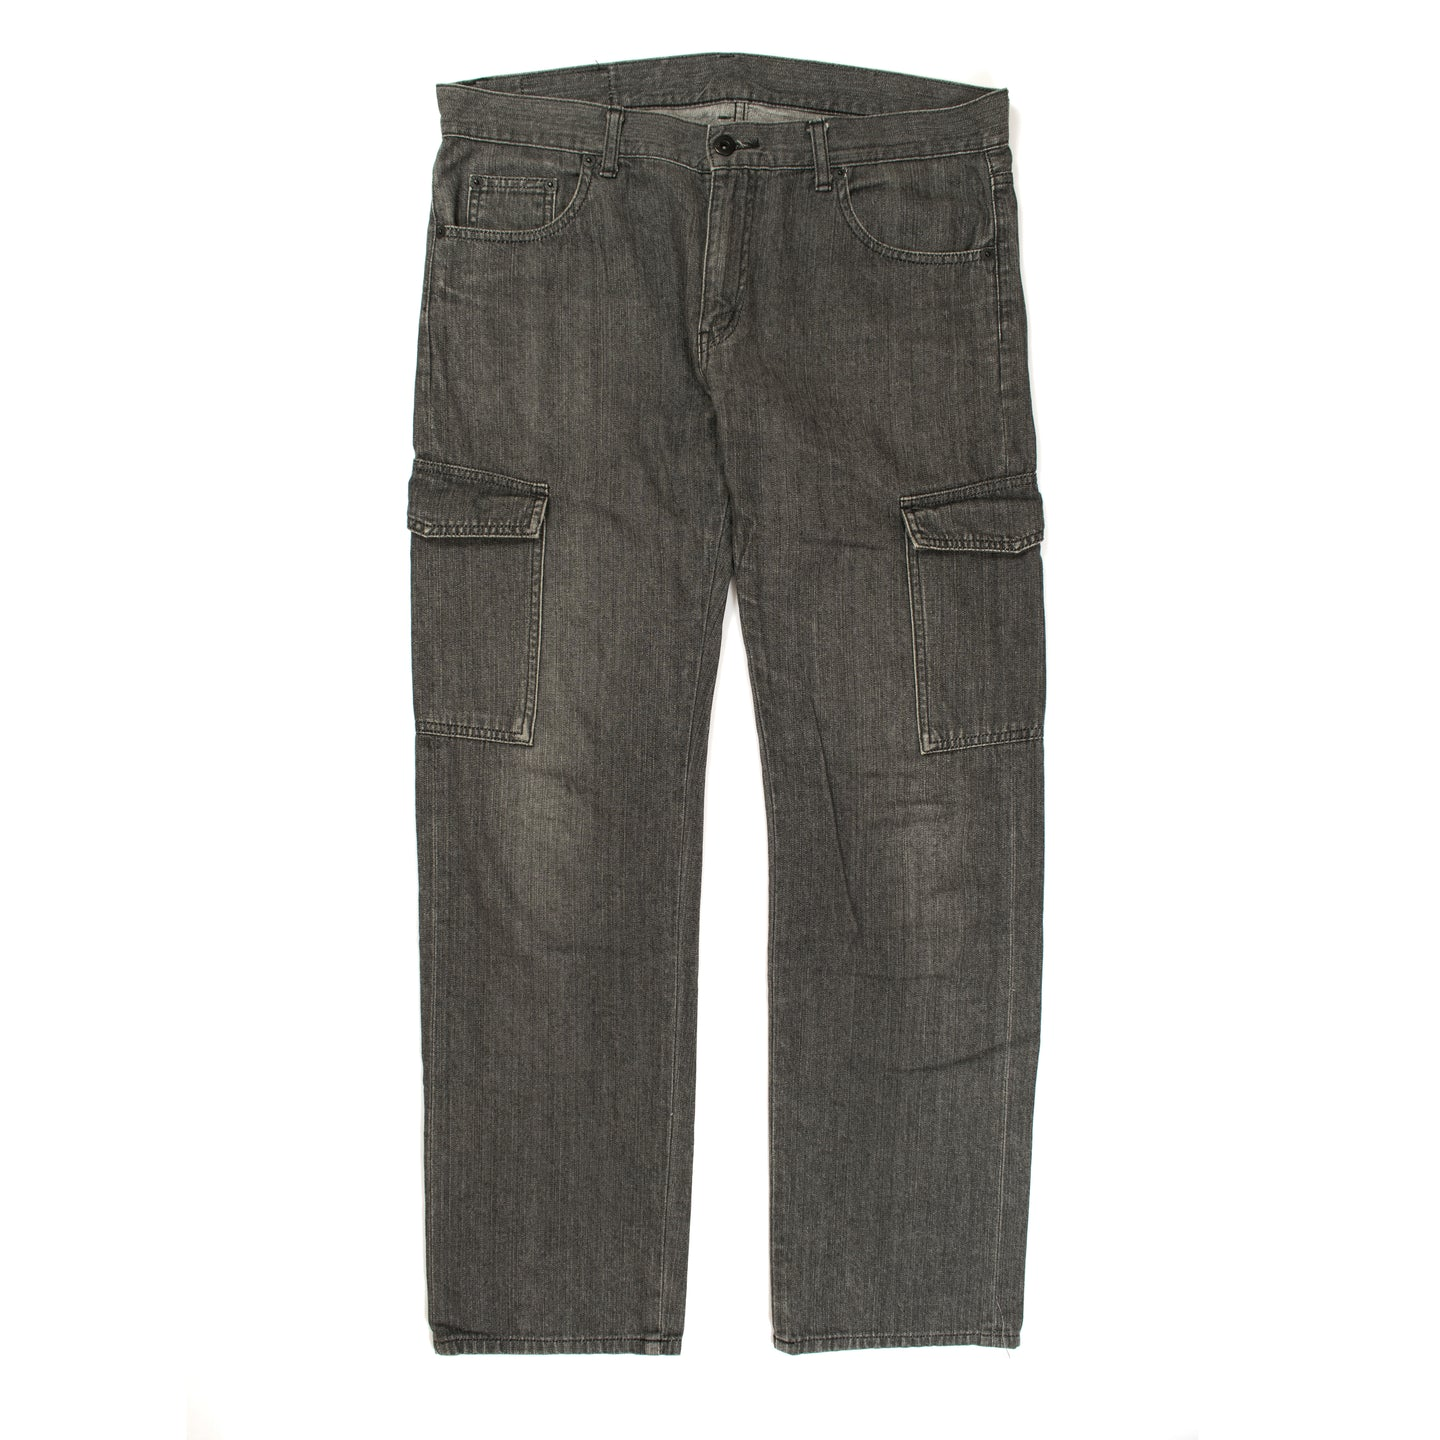 Neighborhood Cargo SPNarrow Denim (2003)